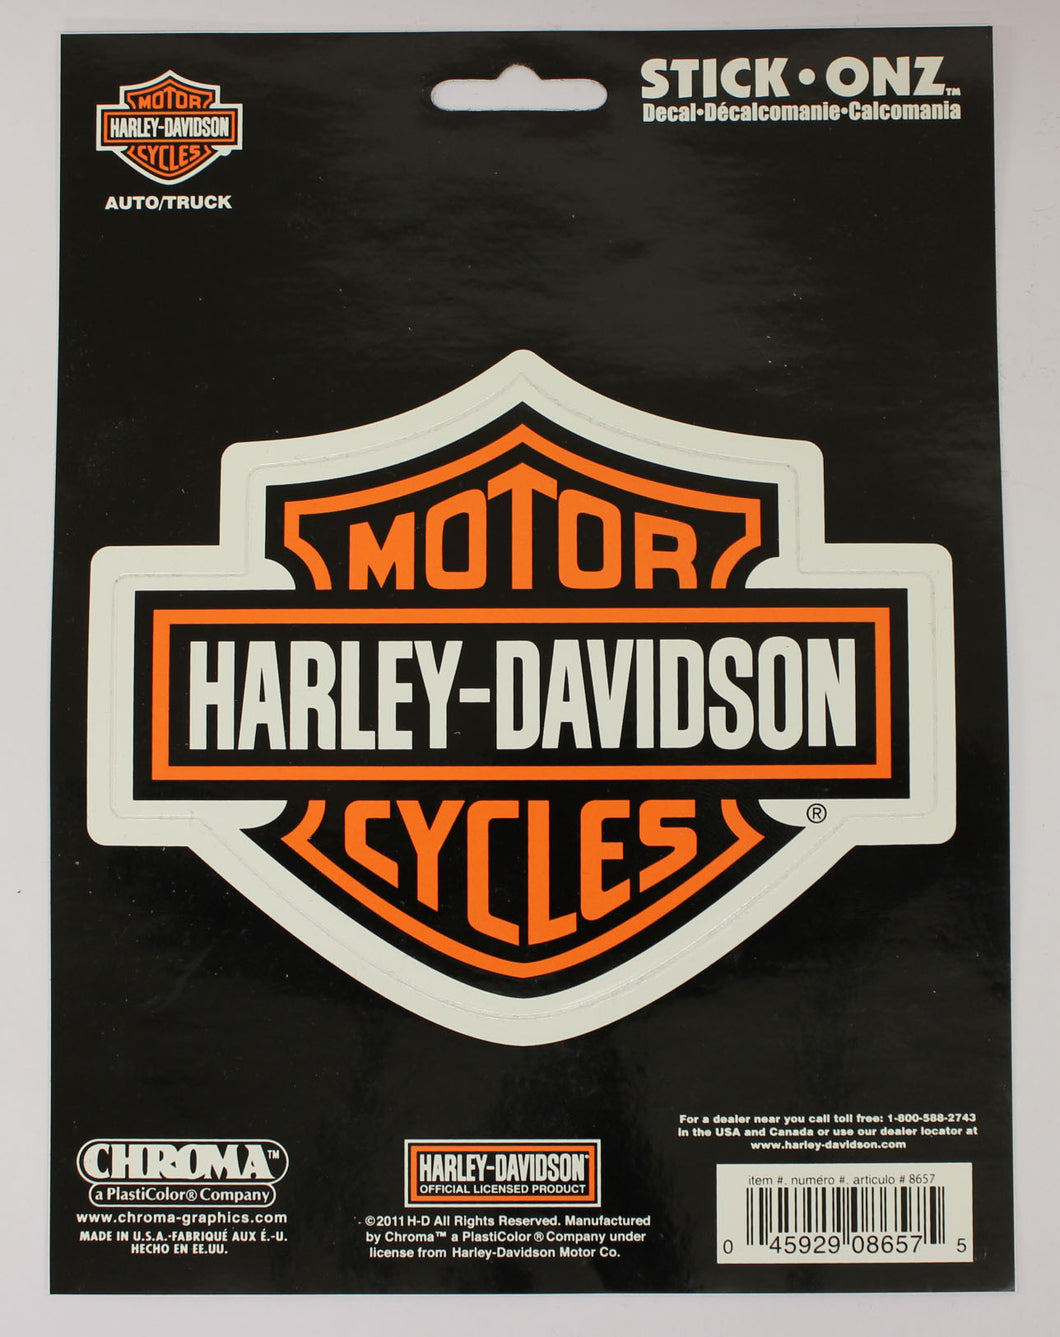 Genuine Harley Davidson Motorcycles Bar & Shield logo sticker, Lifestyle Accessories - Fat Skeleton UK